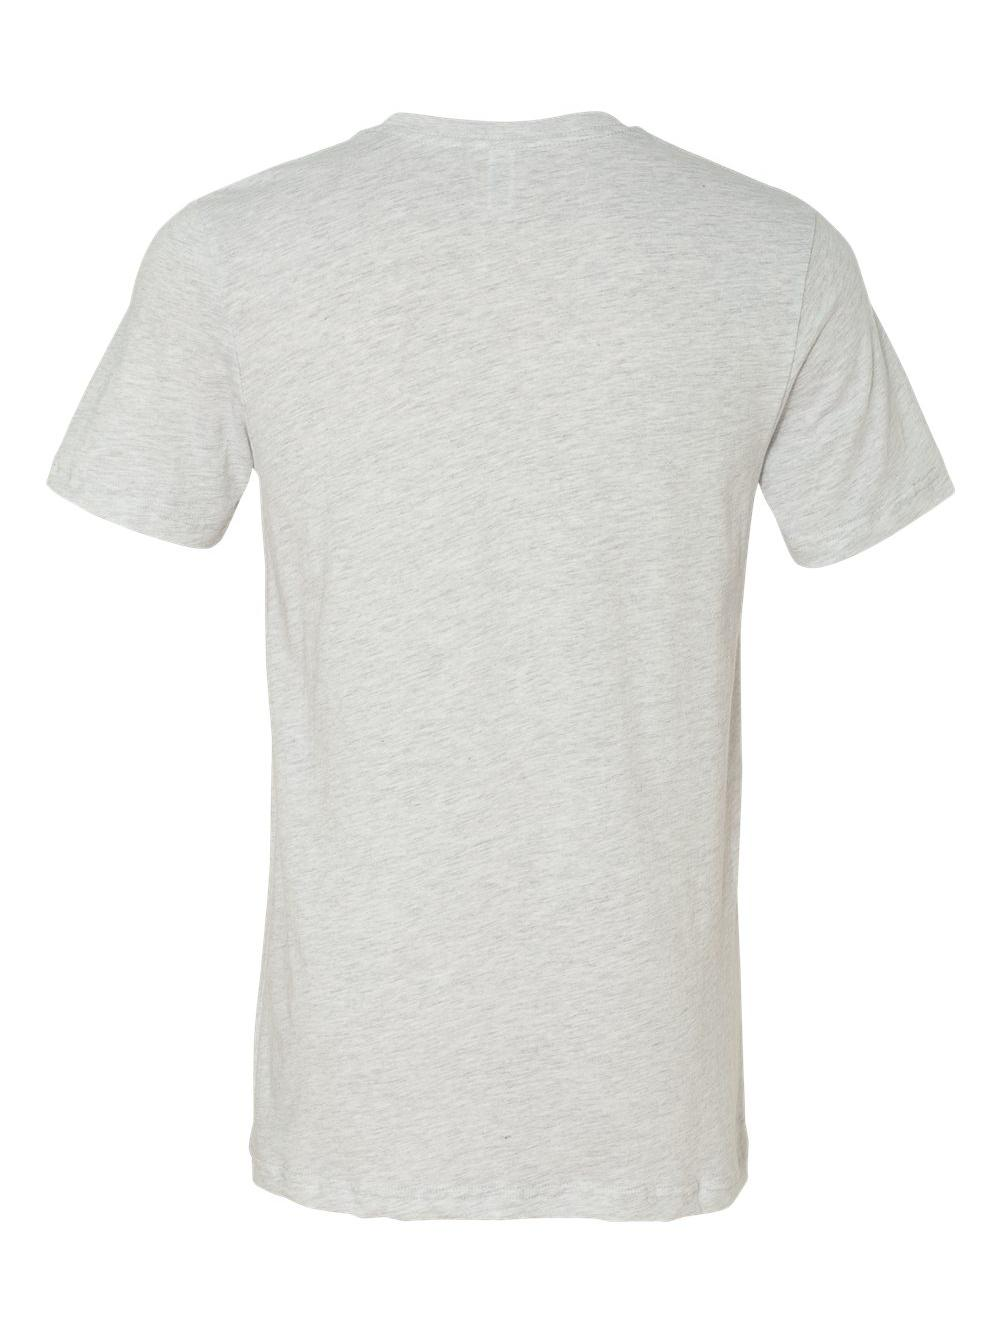 Bella-Canvas-Unisex-Short-Sleeve-Jersey-Tee-3001 thumbnail 10